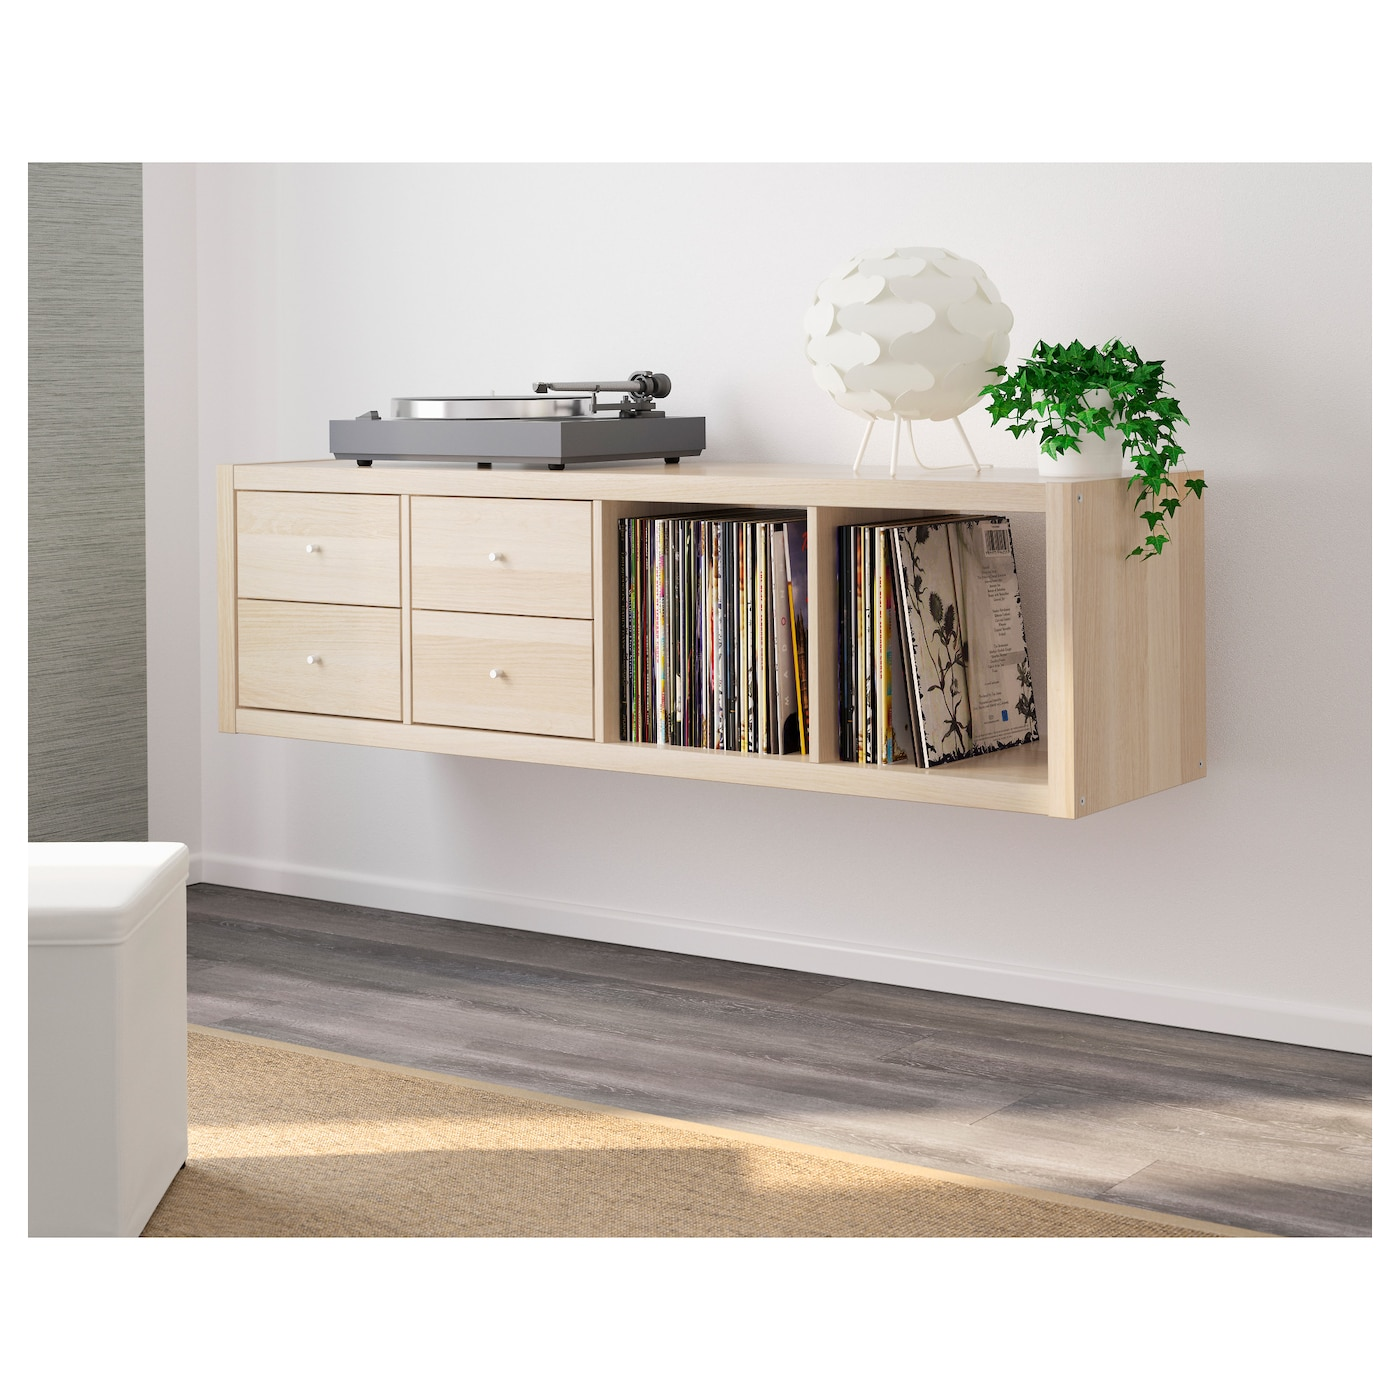 kallax shelving unit with 2 inserts white stained oak effect 42 x 147 cm ikea. Black Bedroom Furniture Sets. Home Design Ideas